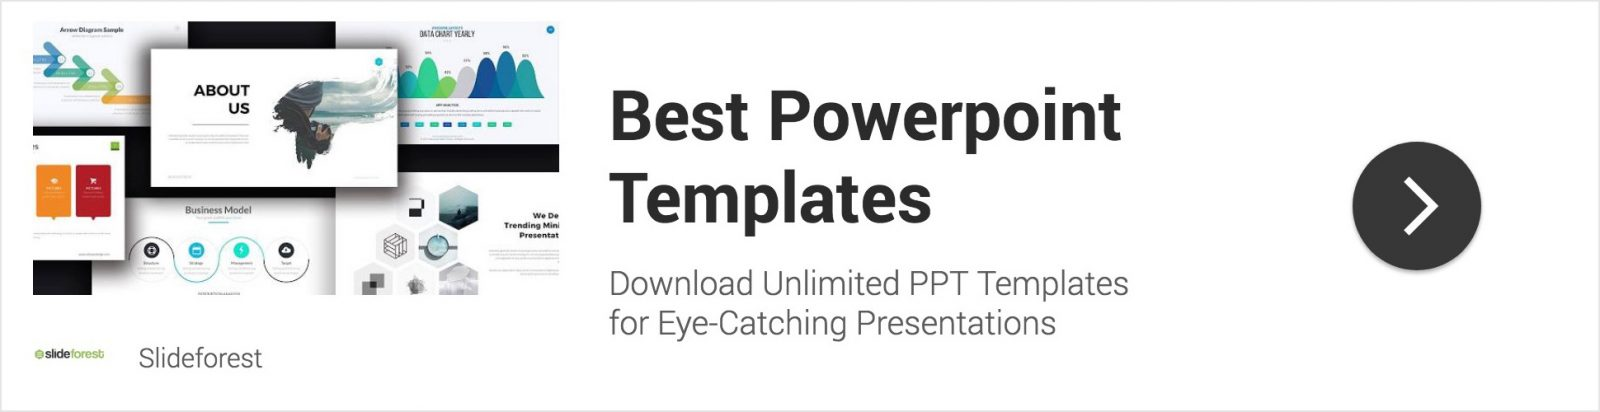 25 free business powerpoint templates for presentations business powerpoint templates accmission